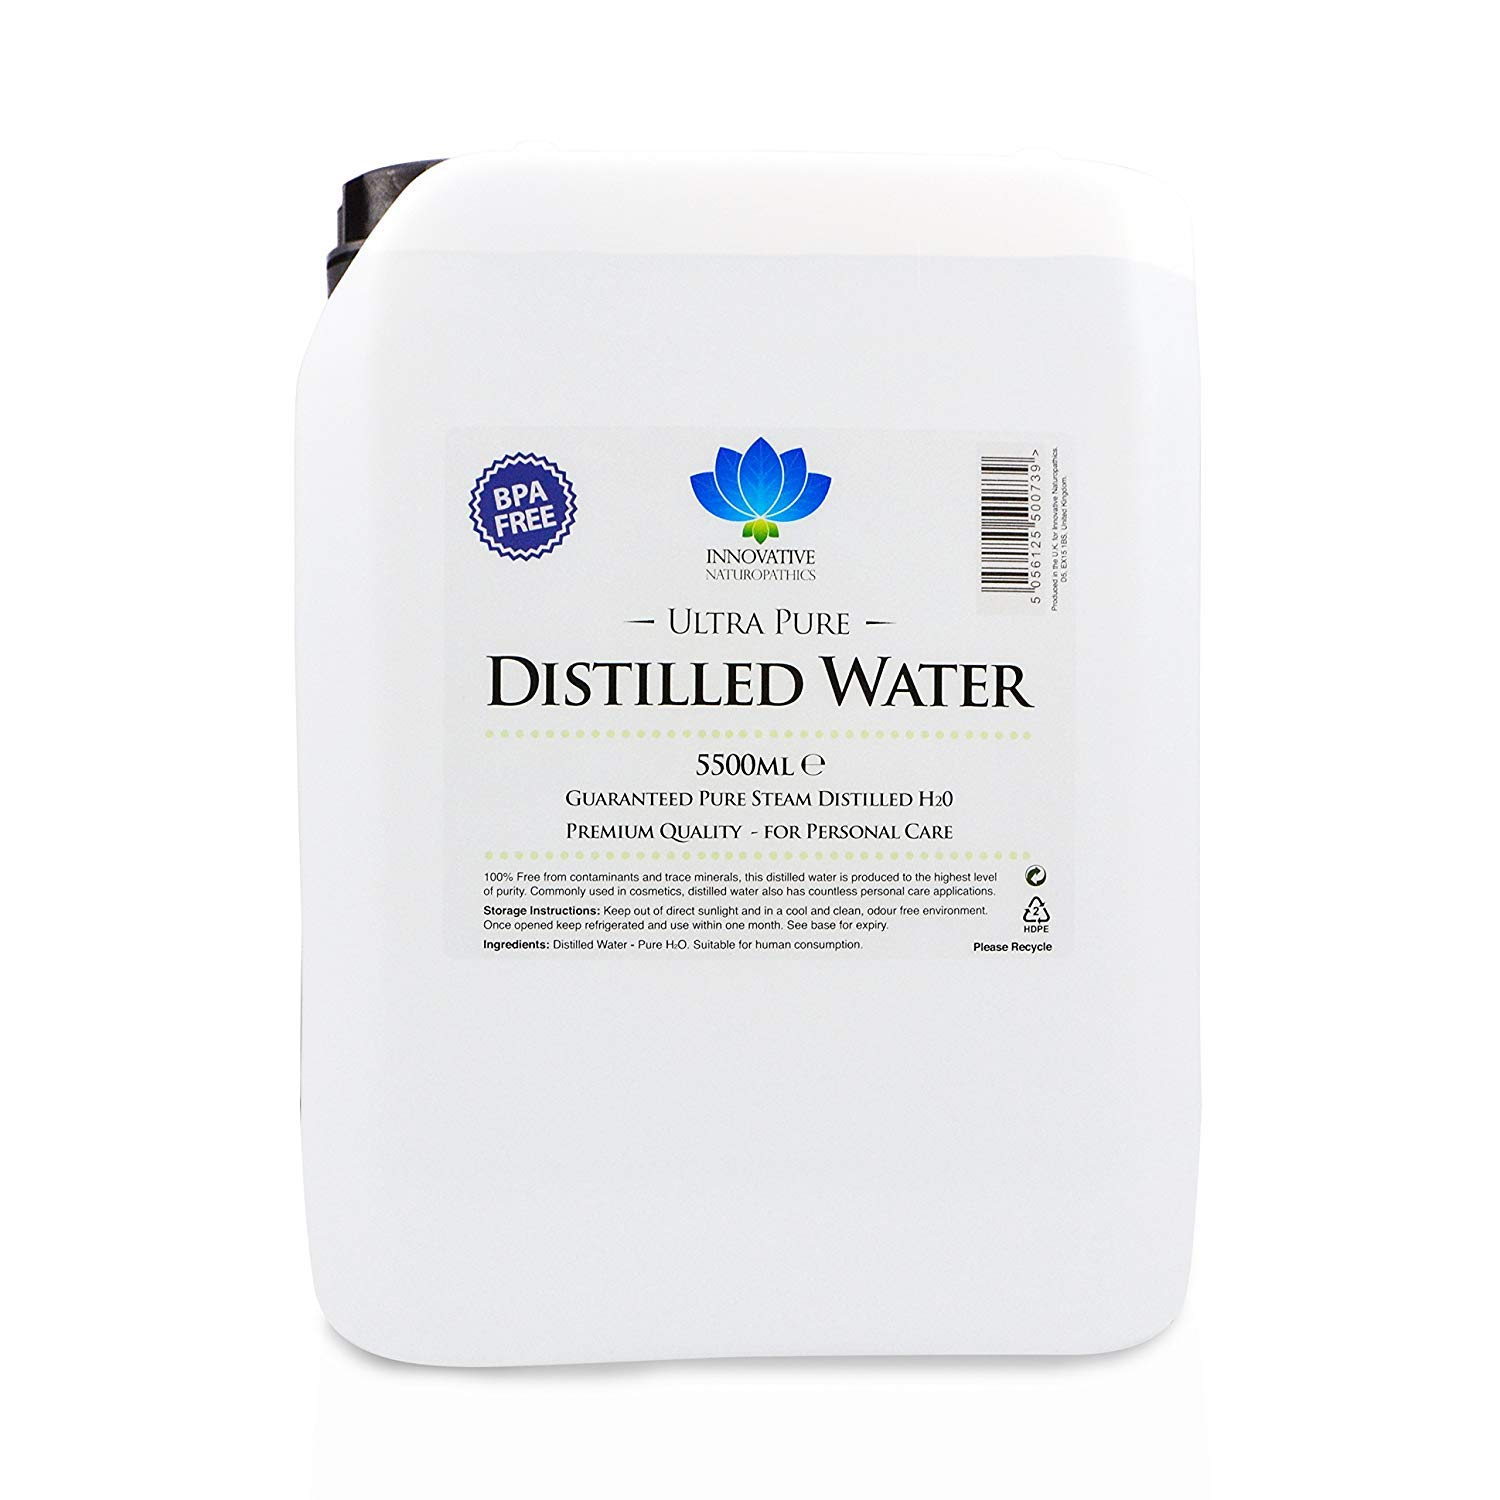 Distilled Water - 5.5 litres - Ultra Pure Water